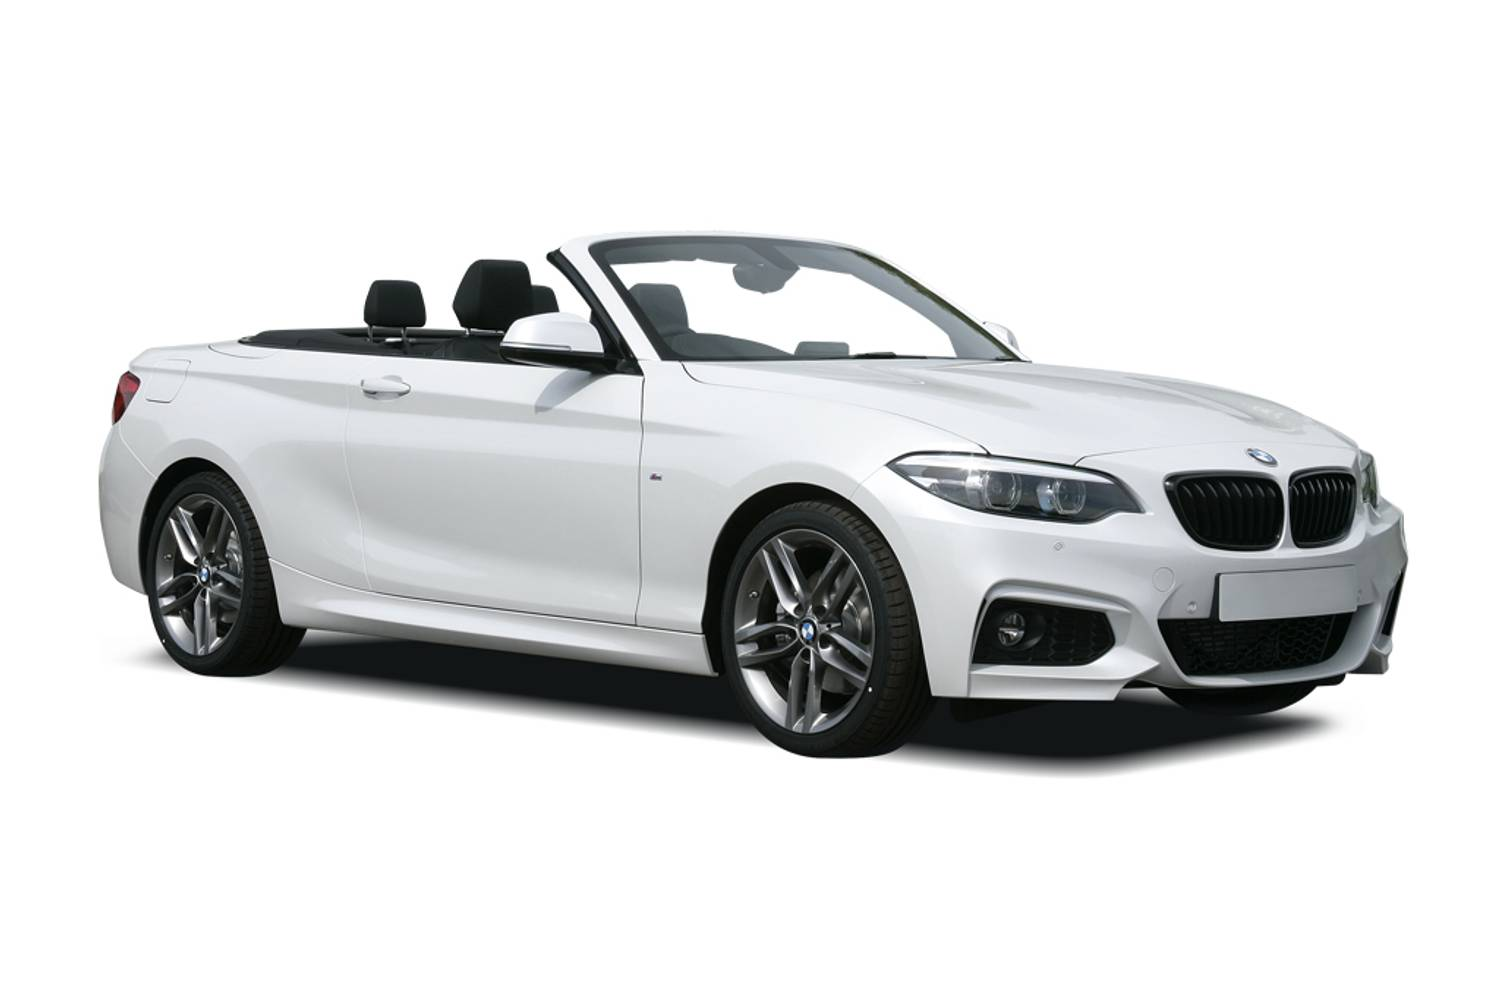 BMW 2 Series Convertible 2dr [Nav] Front Three Quarter